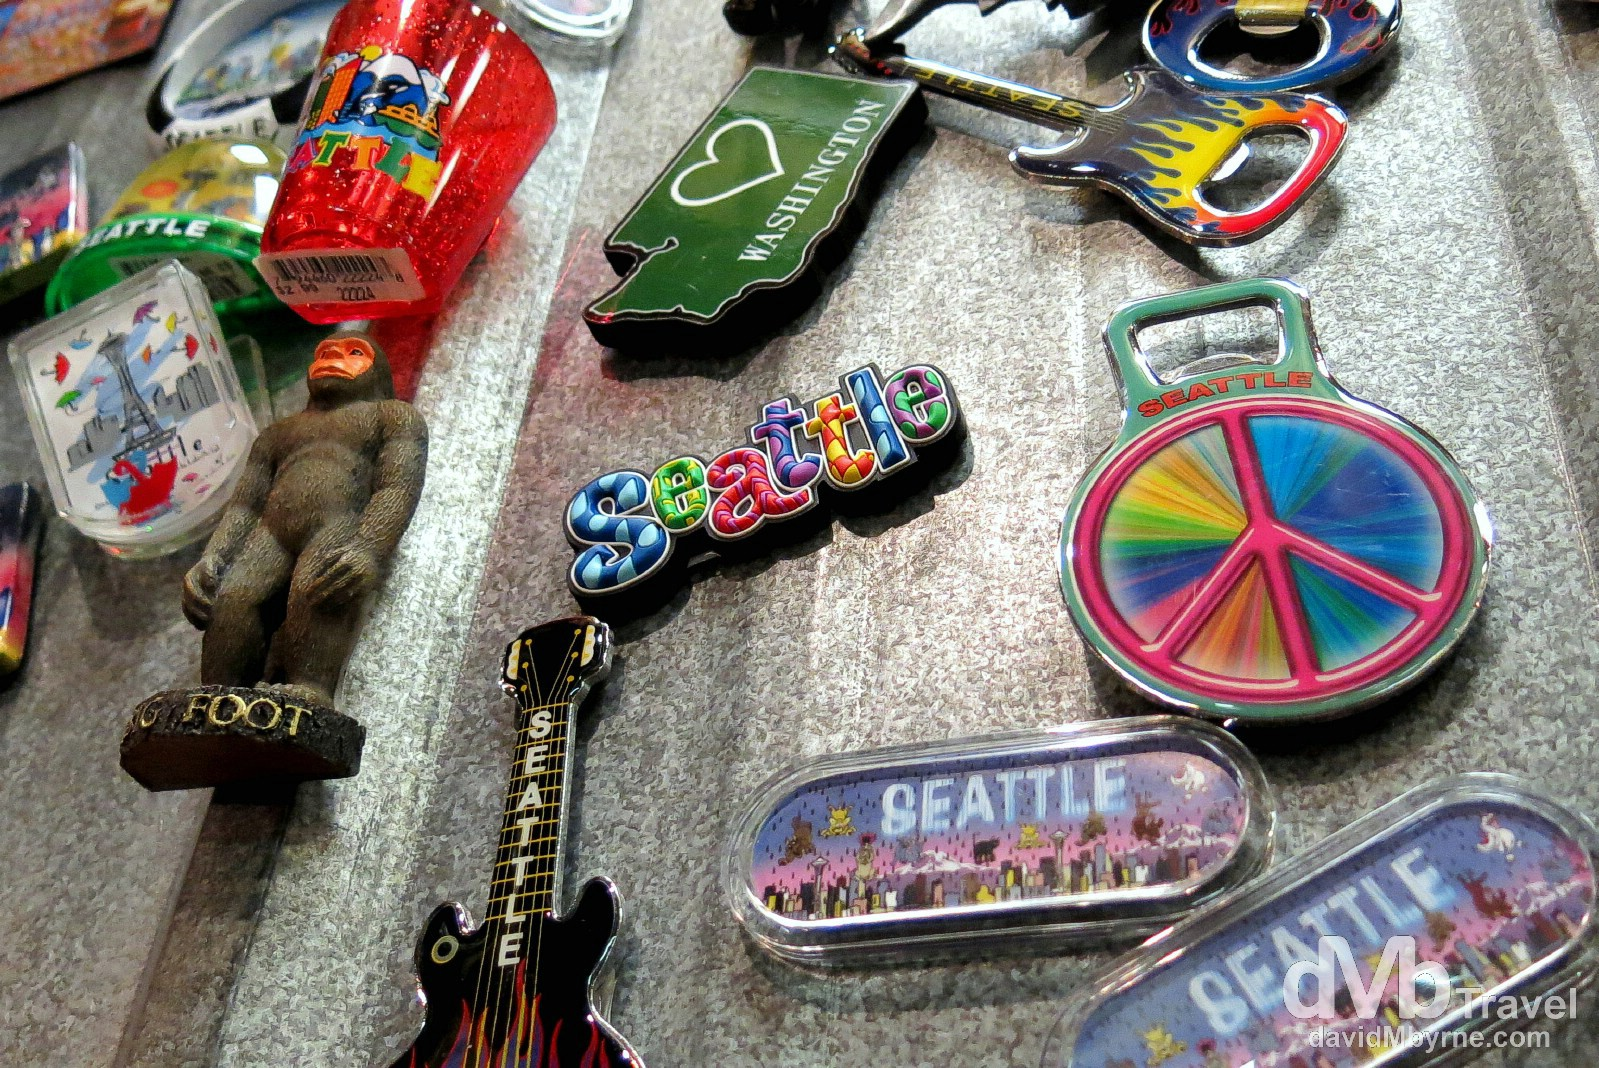 "Fridge magnets in Ye Olde Curiosity Shop, Seattle. Ye Olde Curiosity Shop has been here in one form or another since 1899, in continuous operation by the same family. The narrow, cluttered gift novelty store -- a mainstay of Seattle tourism -- never fails to please and revolt. Although a shop first & foremost, the resident (American, not Egyptian) mummies, Sylvester and Sylvia, are its biggest draw. Other Shop denizens include a virtual family of Barnum Mer-creatures: a Mermaid, a Mer-Baby, and a Mer-dog named ""Petri-Fido."" The requisite freak pig in a jar shares space with a ship scale model constructed entirely of matchsticks. There is a 350-year-old ""African voodoo monkey"" -- its intestines have been removed and braided onto its head. Curious indeed and a Seattle must-see. Ye Olde Curiosity Shop, Seattle, Washington, USA. March 26th 2103."